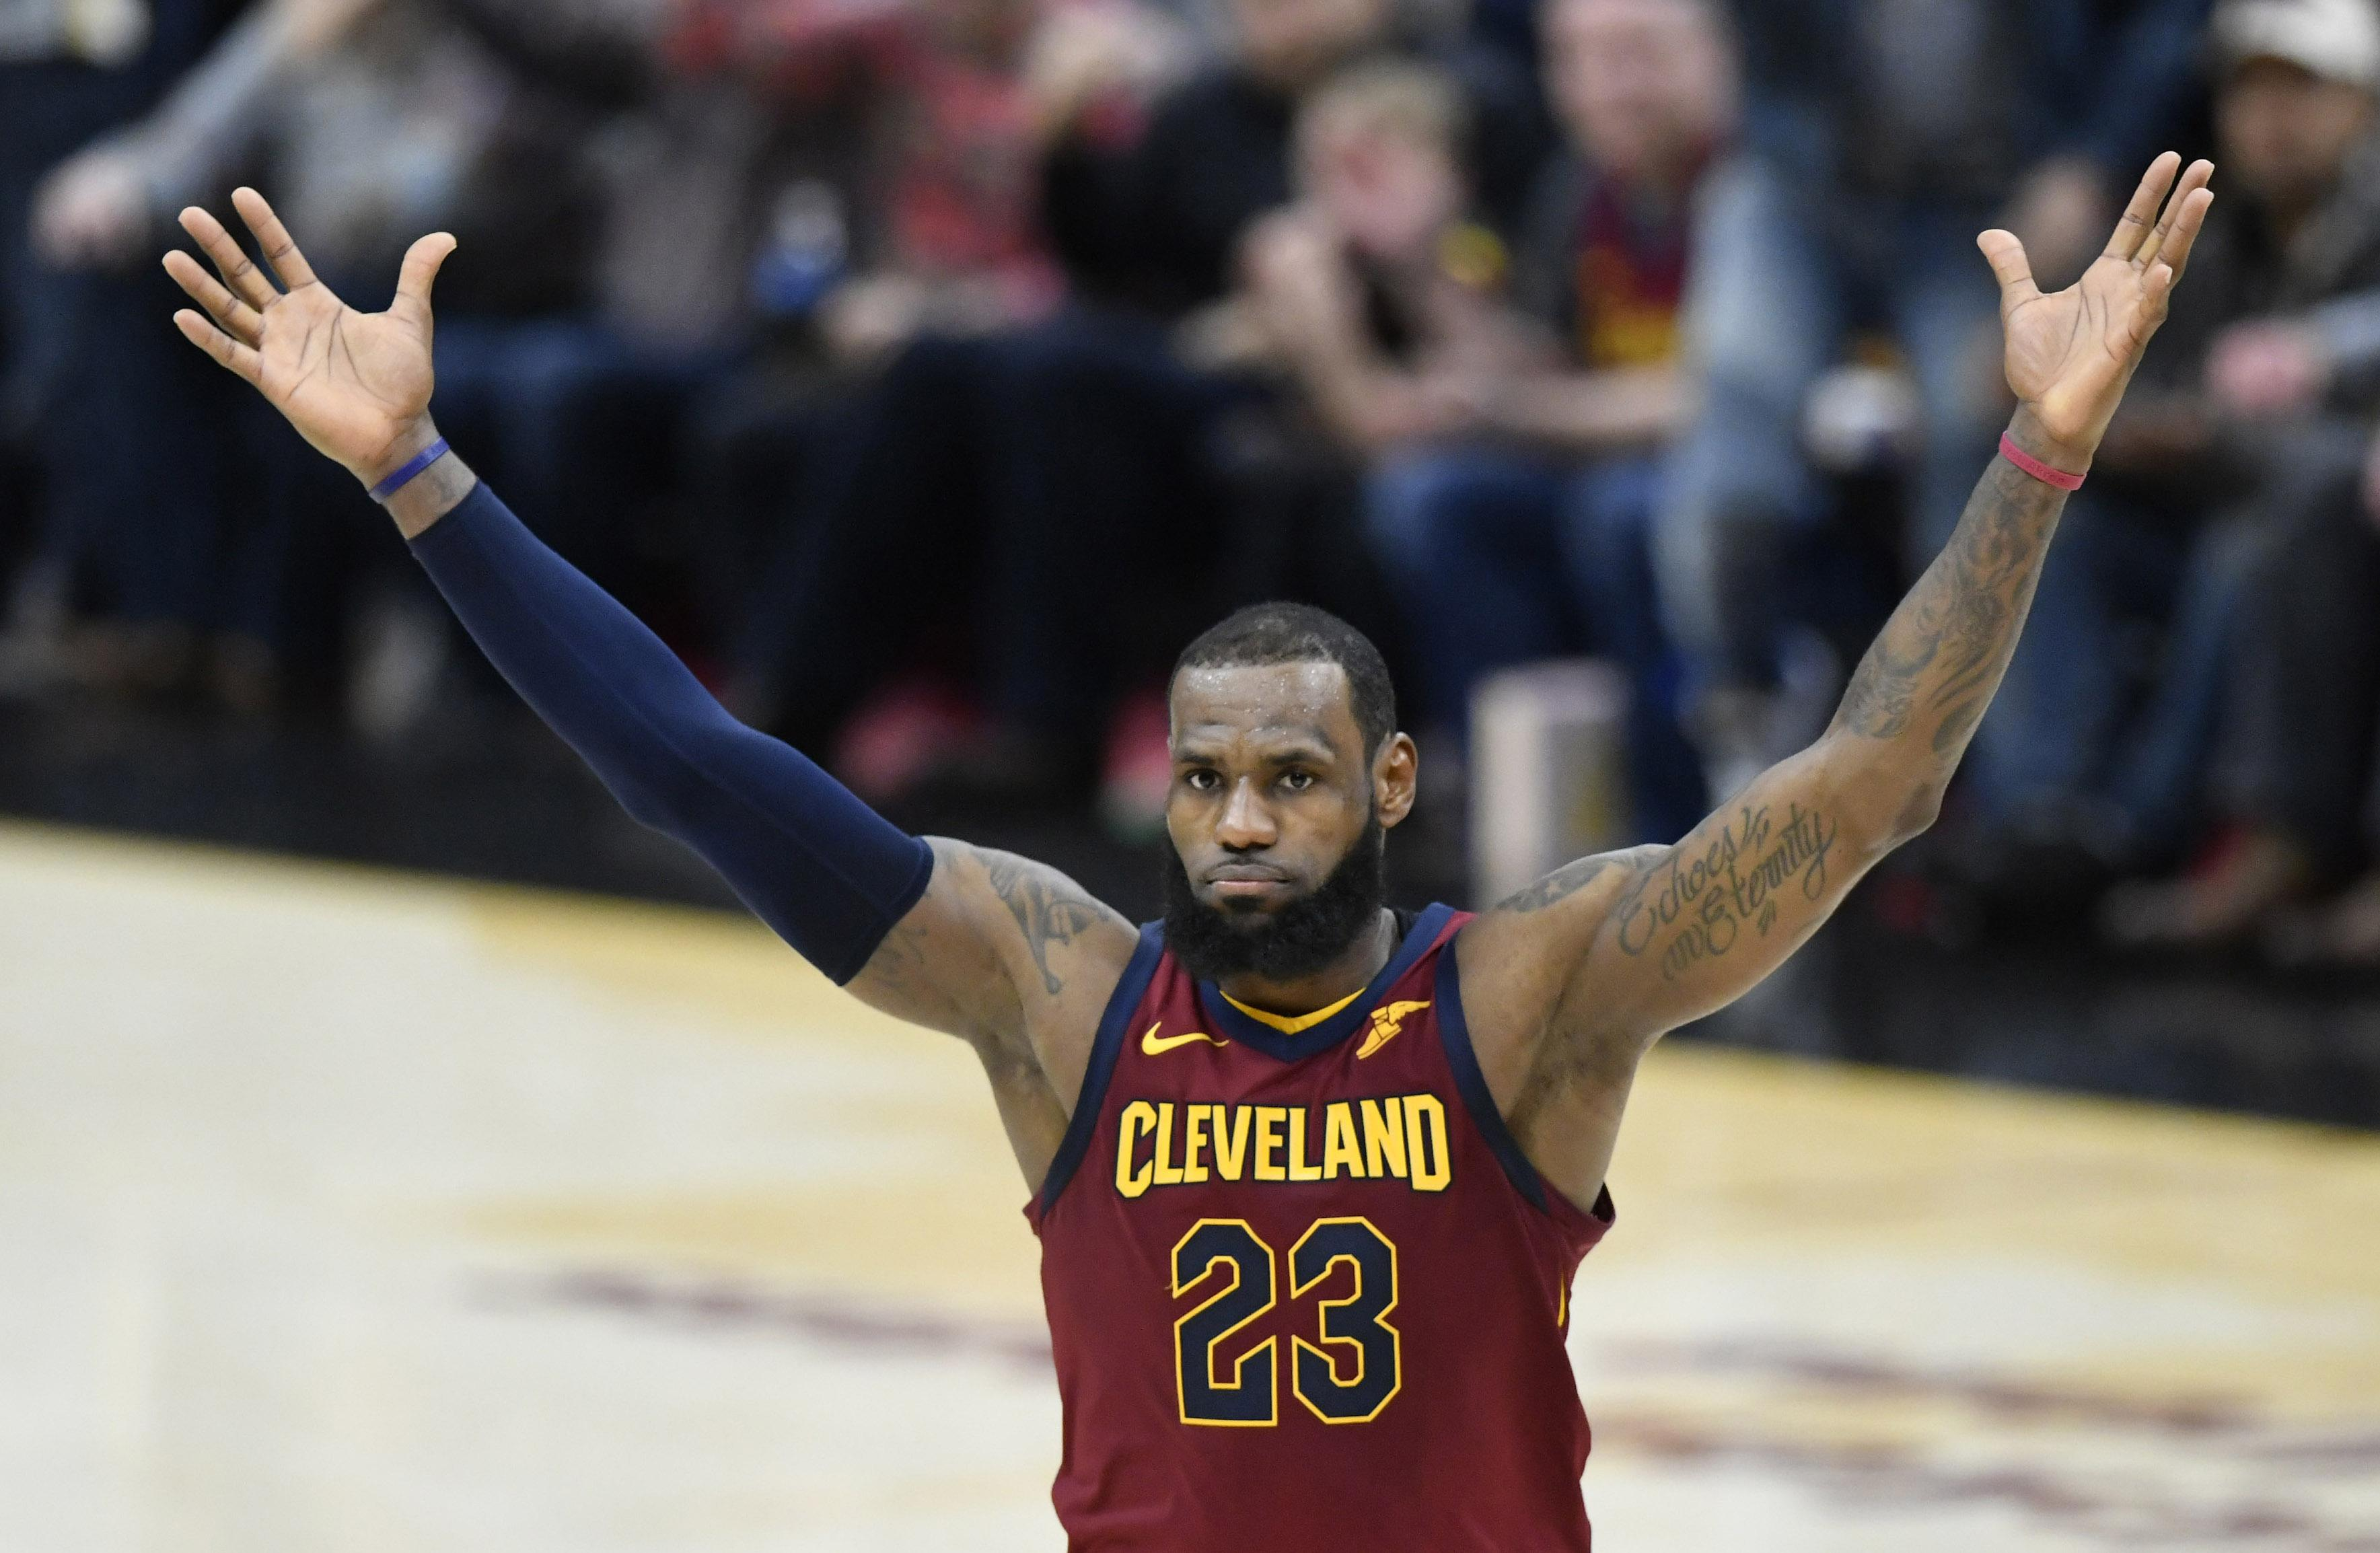 925d5a532af LeBron James to join Los Angeles Lakers in four-year